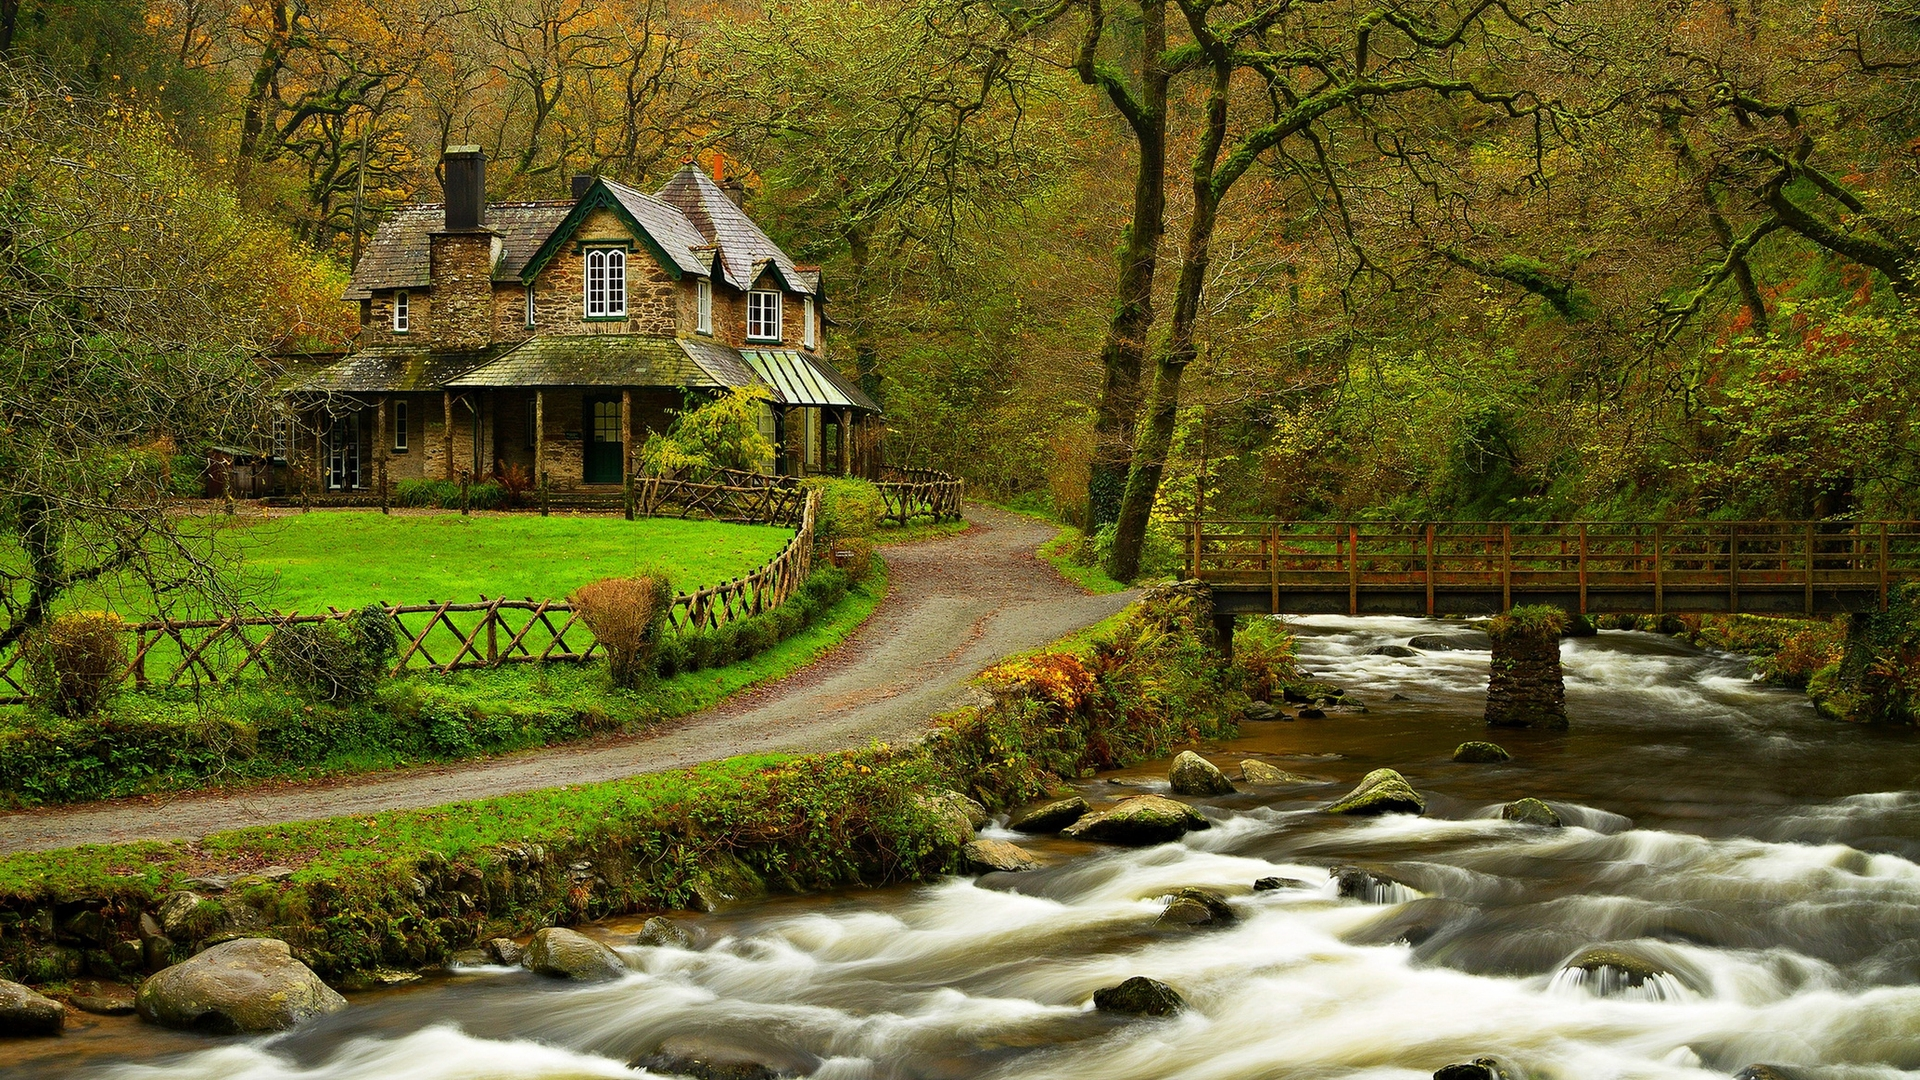 House In The Woods Wood Trees River Wallpaper 1920x1080 1199694 Wallpaperup